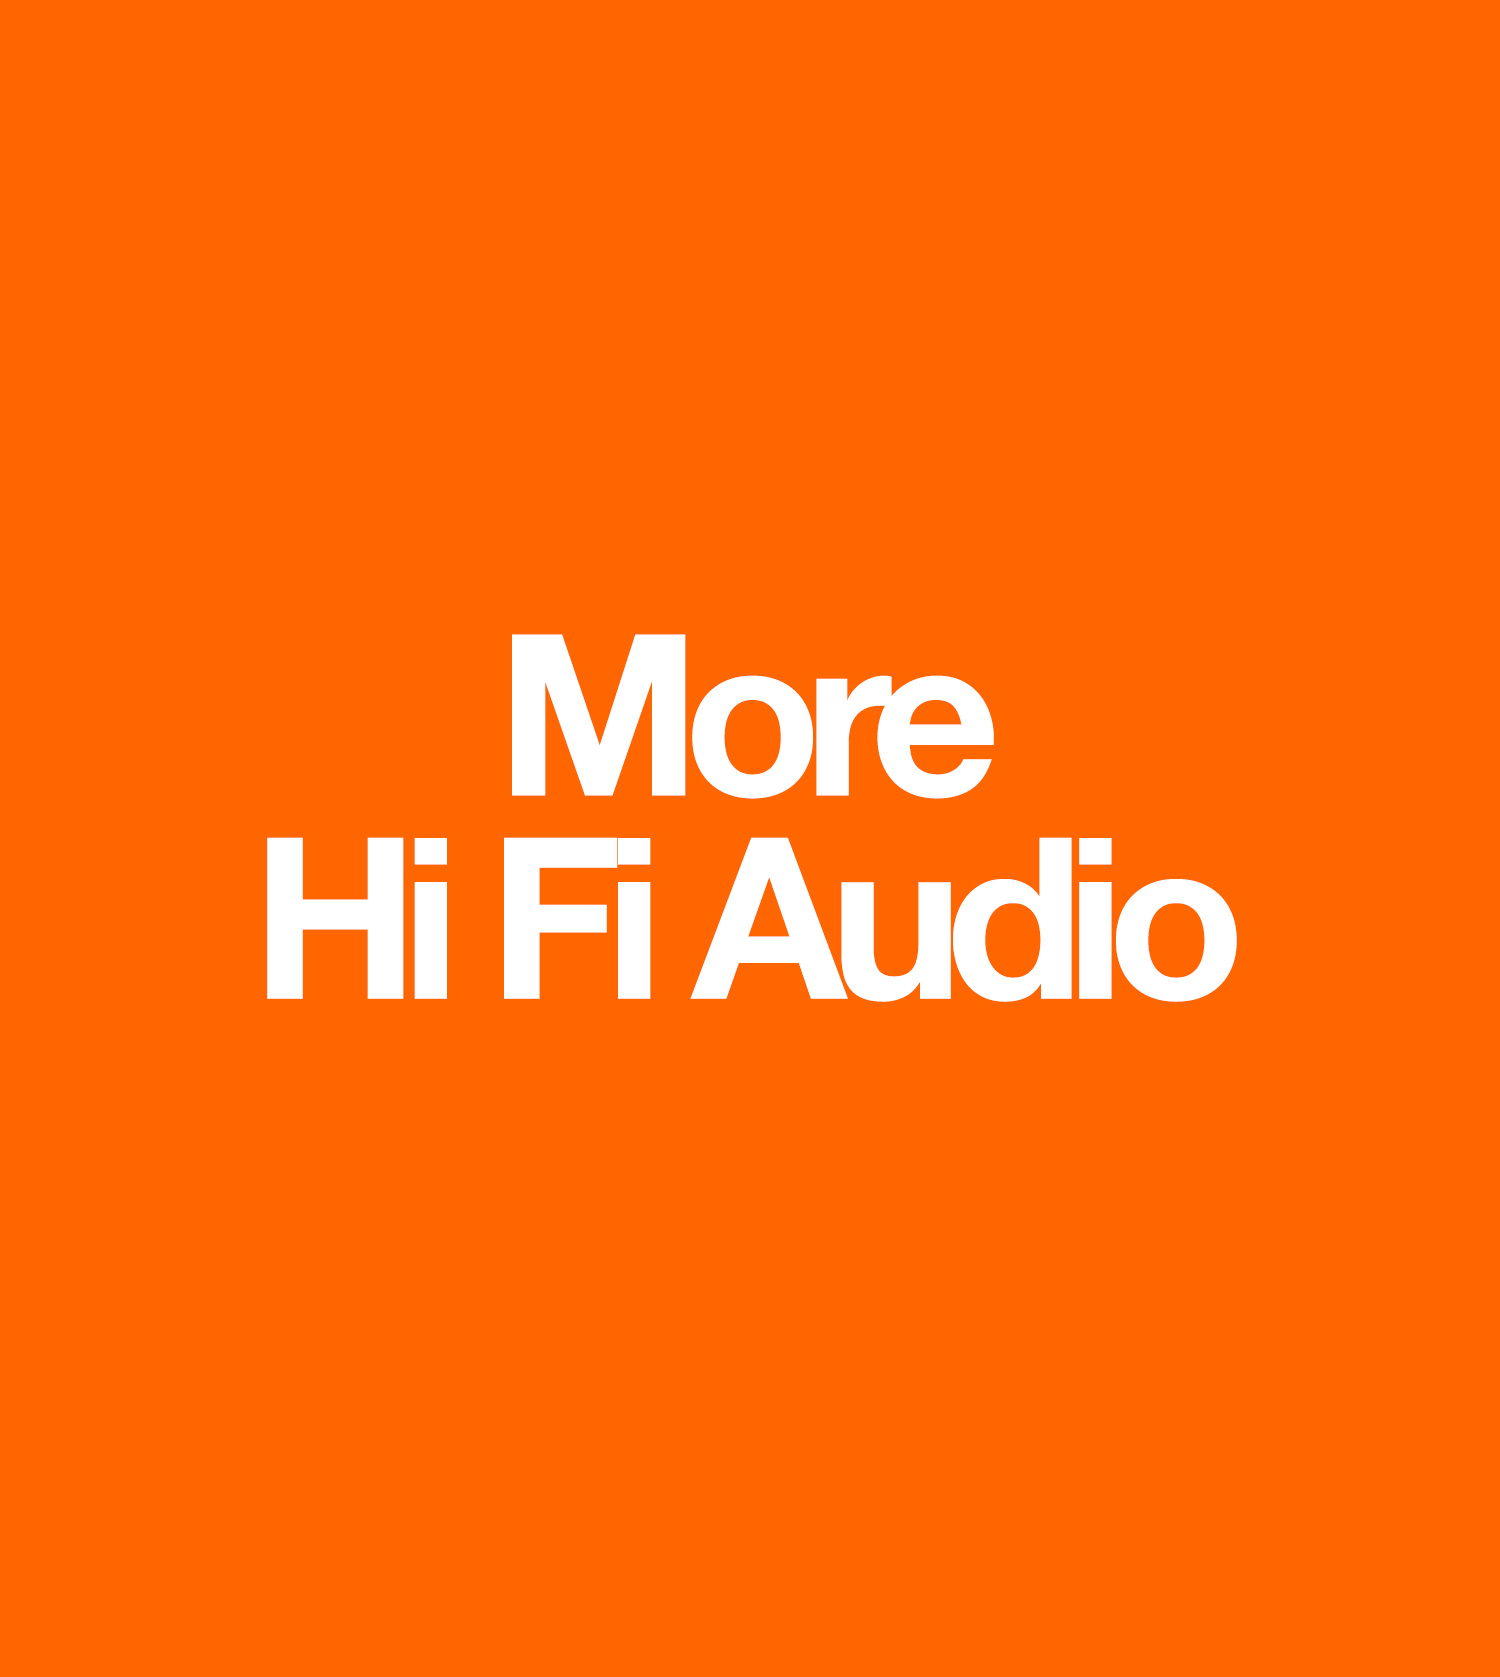 Hi-Fi Audio